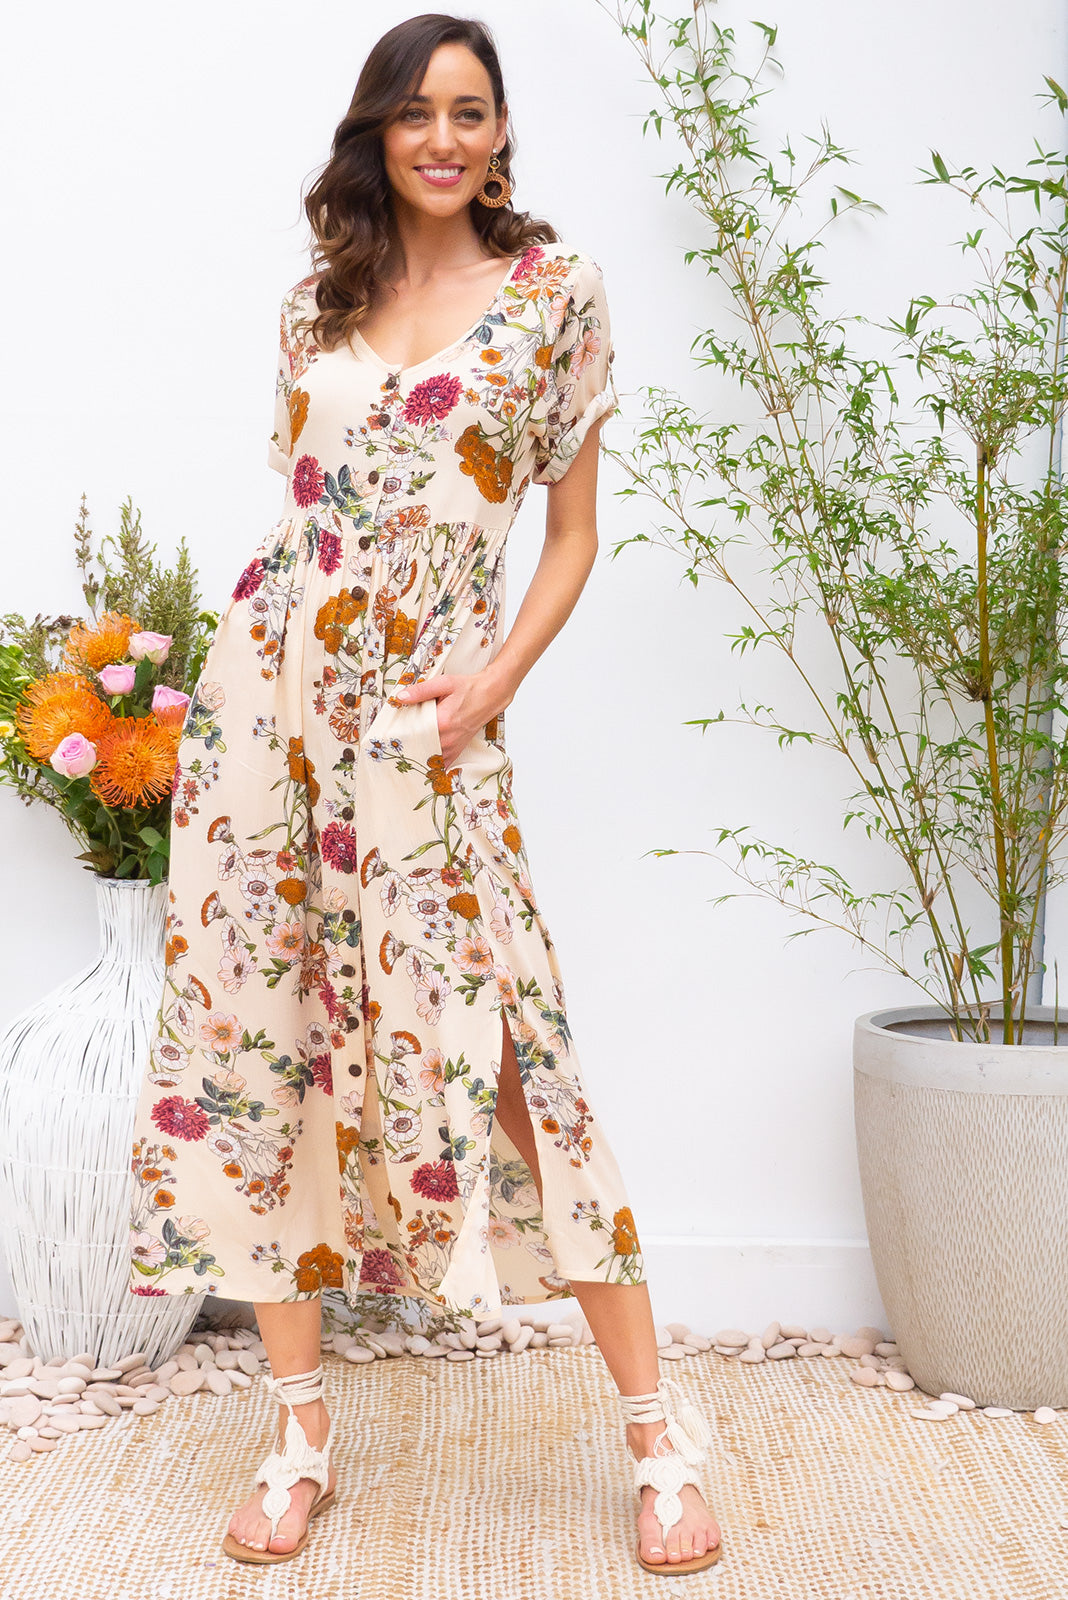 Rocco Buttercup button front maxi dress in soft peach delicate floral print on crinkled rayon fabric